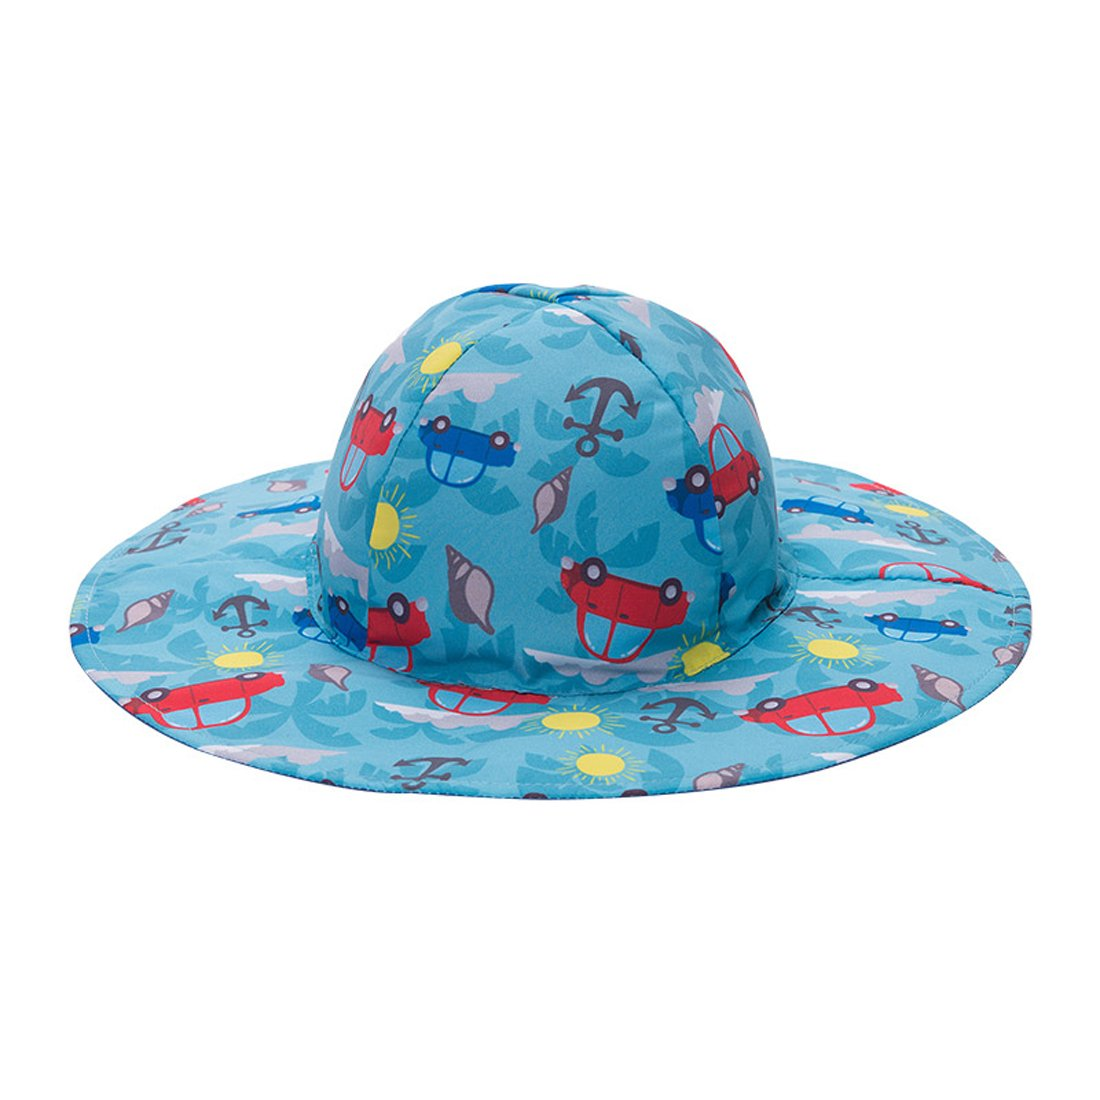 LoveKids Reversible Sun Protection Hat for Girls and Boys(A28007Blue) by LoveKids